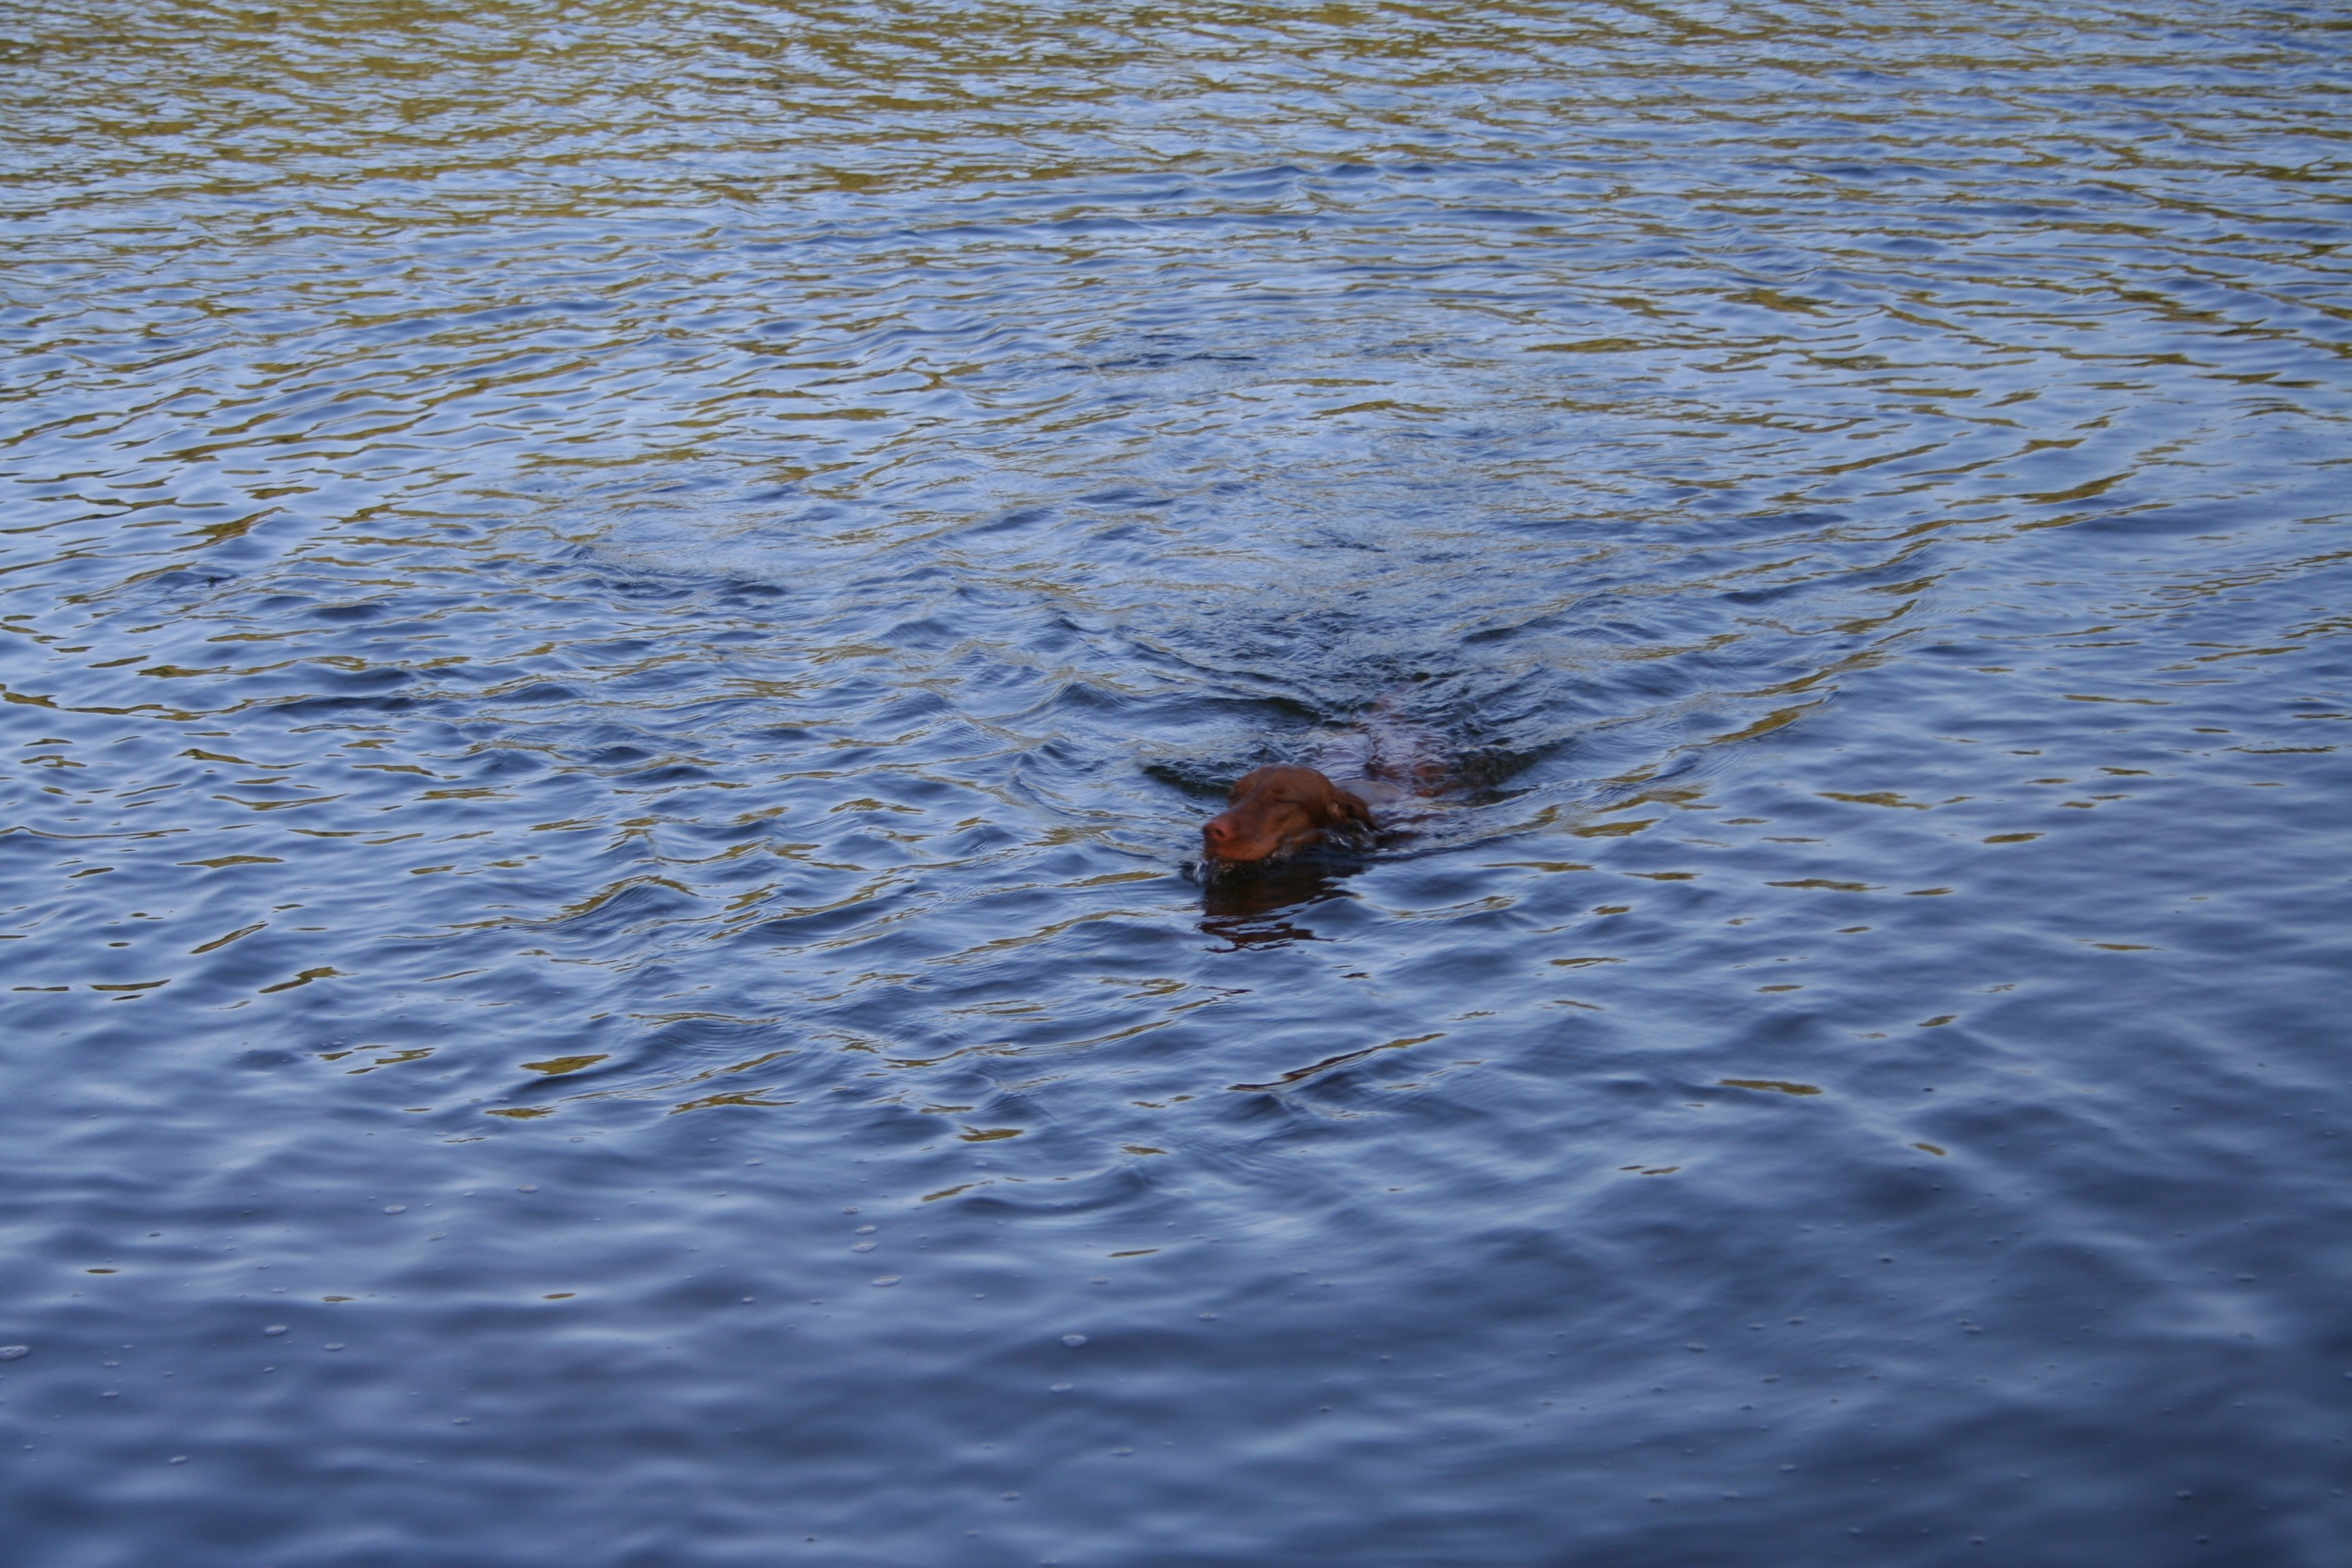 The <i>real</i> Loch Ness monster!